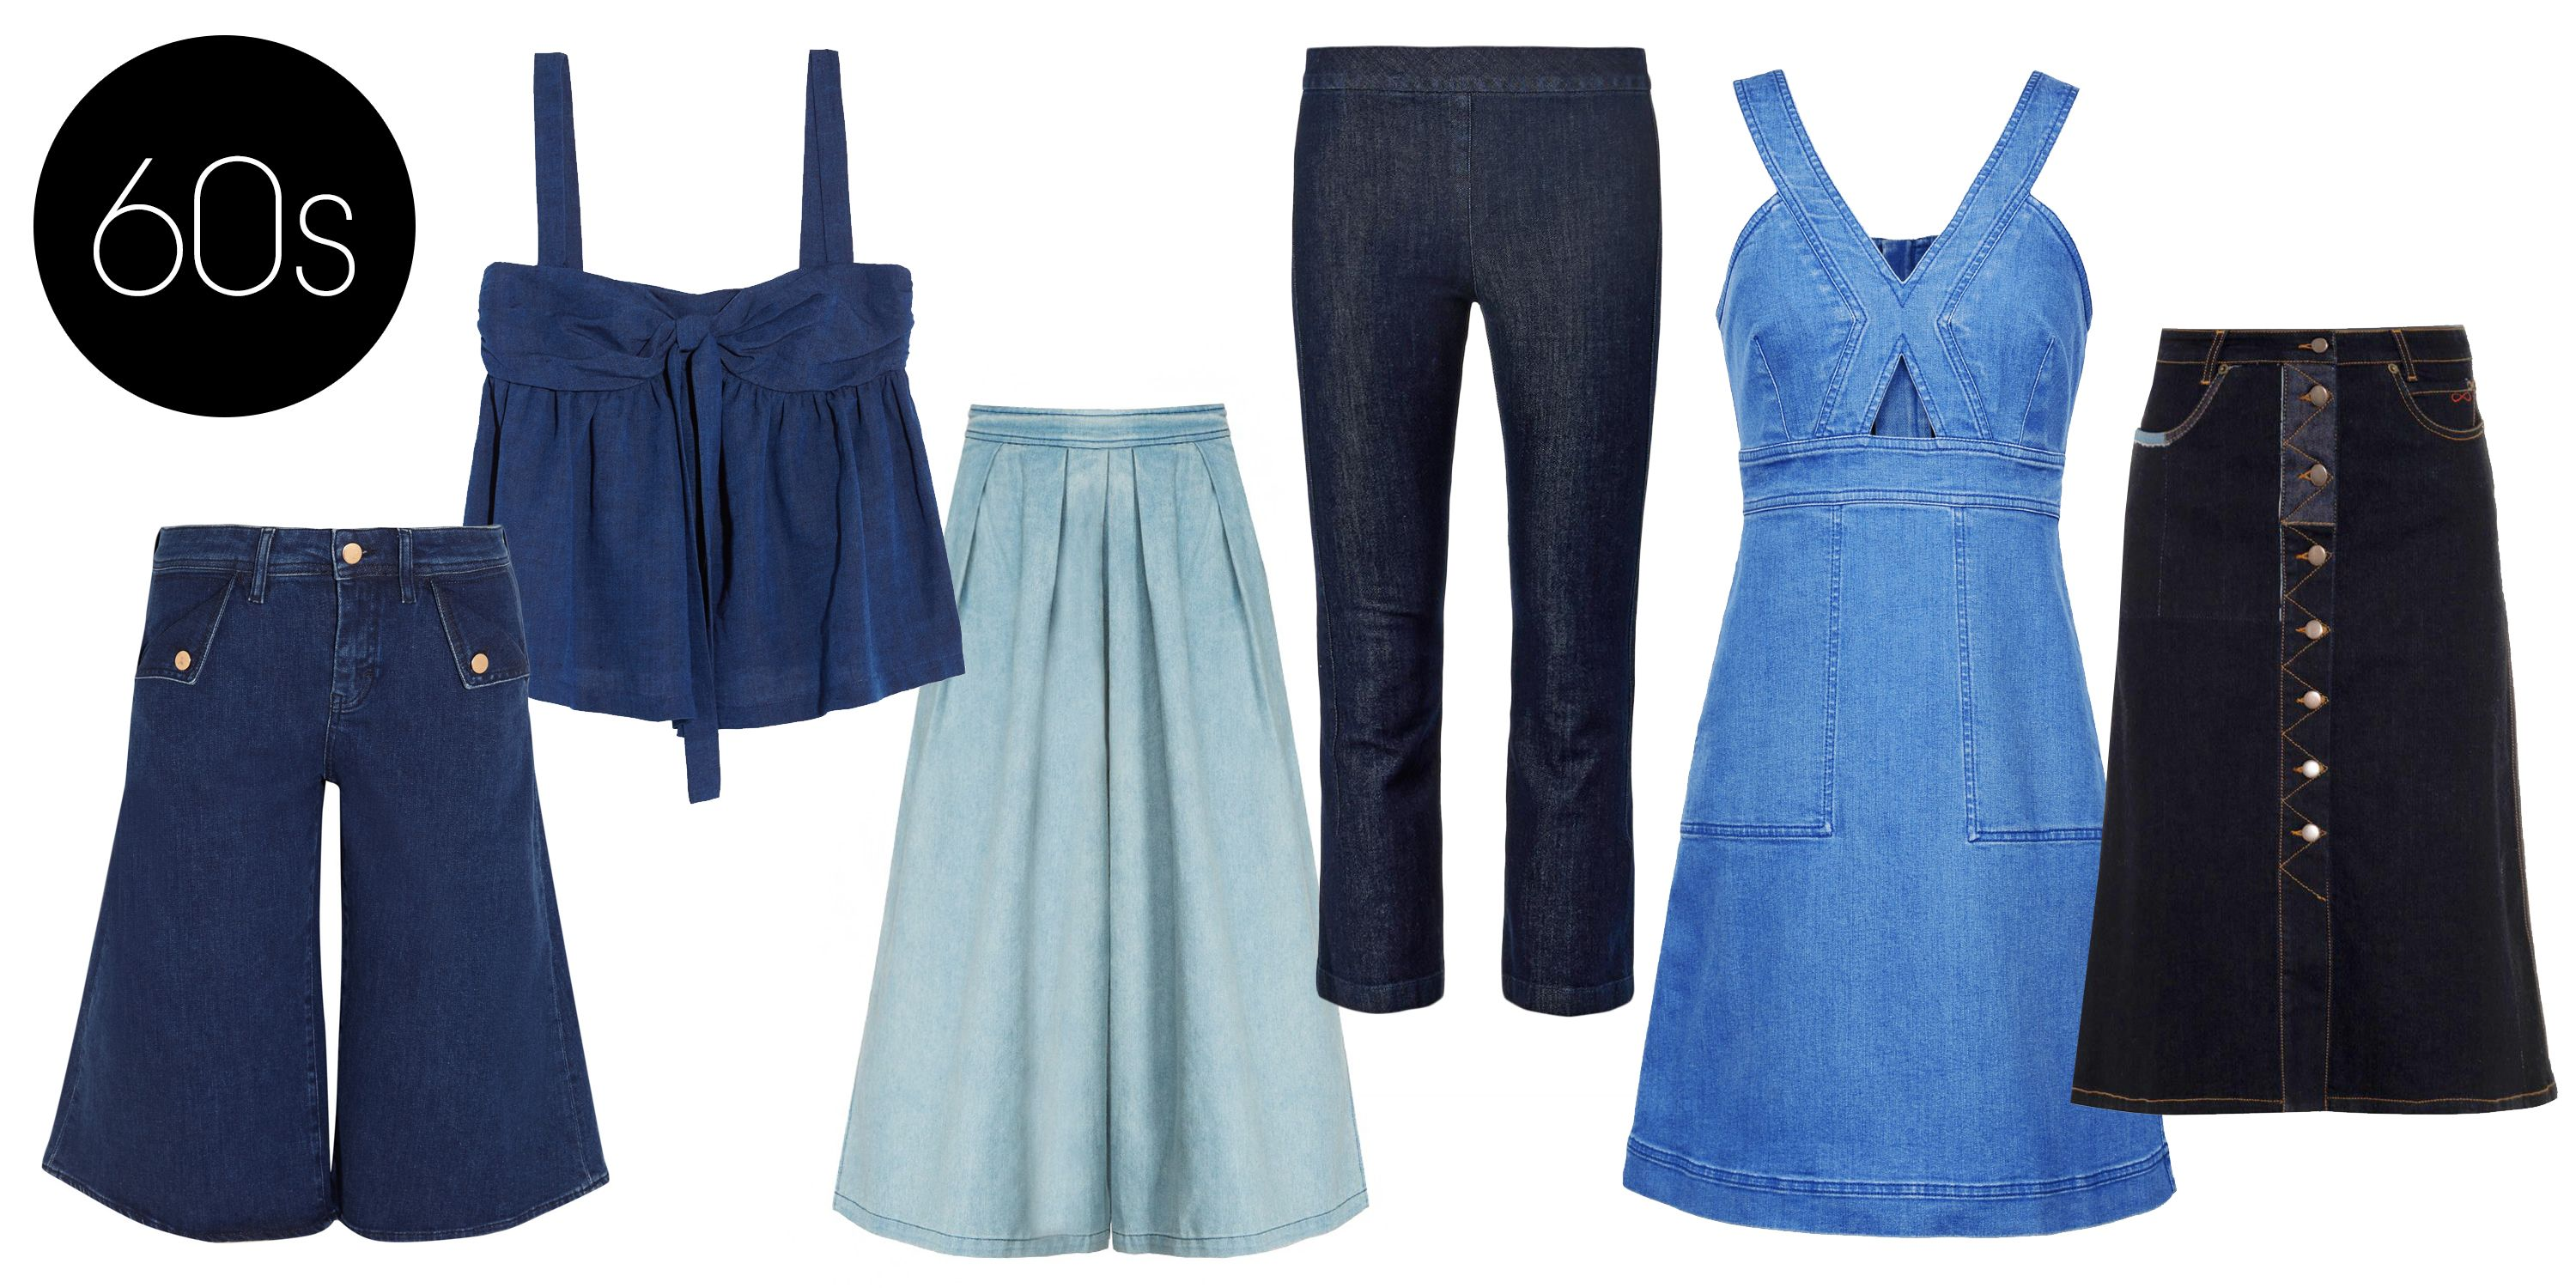 "<p>The denim of the '60s continued to bleed into the style of the '70s. Look out for feminine cuts and the beginning of the flared jean.</p> <p>Stella McCartney Denim Dress, $810; <a href=""http://www.stellamccartney.com/us/stella-mccartney/knee-length_cod34472662ew.html?utm_campaign=affiliazione_us&utm_content=10&utm_medium=affiliazione&utm_source=linkshare_us&tp=51960"">stellamccartney.com</a></p> <p>M MIssoni Bow-embellished Denim Top, $395; <a href=""http://www.net-a-porter.com/product/497286/M_Missoni/bow-embellished-denim-top"">net-a-porter.com</a></p> <p>The Row Seeton High-rise Kick-flare Cropped Jeans, $526; <a href=""http://www.matchesfashion.com/product/217273"">matchesfashion.com</a></p> <p>MIH Jeans The Kin Stretch-denim Culottes, $215; <a href=""http://www.net-a-porter.com/product/493227/MiH_Jeans/the-kin-stretch-denim-culottes"">net-a-porter.com</a></p> <p>Pixie Market Denim Culottes, $58; <a href=""http://www.pixiemarket.com/denim-culottes.html"">pixiemarket.com</a></p> <p>Preen Line Penelope A-line Denim Skirt, $357; <a href=""http://www.matchesfashion.com/product/1001226"">matchesfashion.com</a></p>"